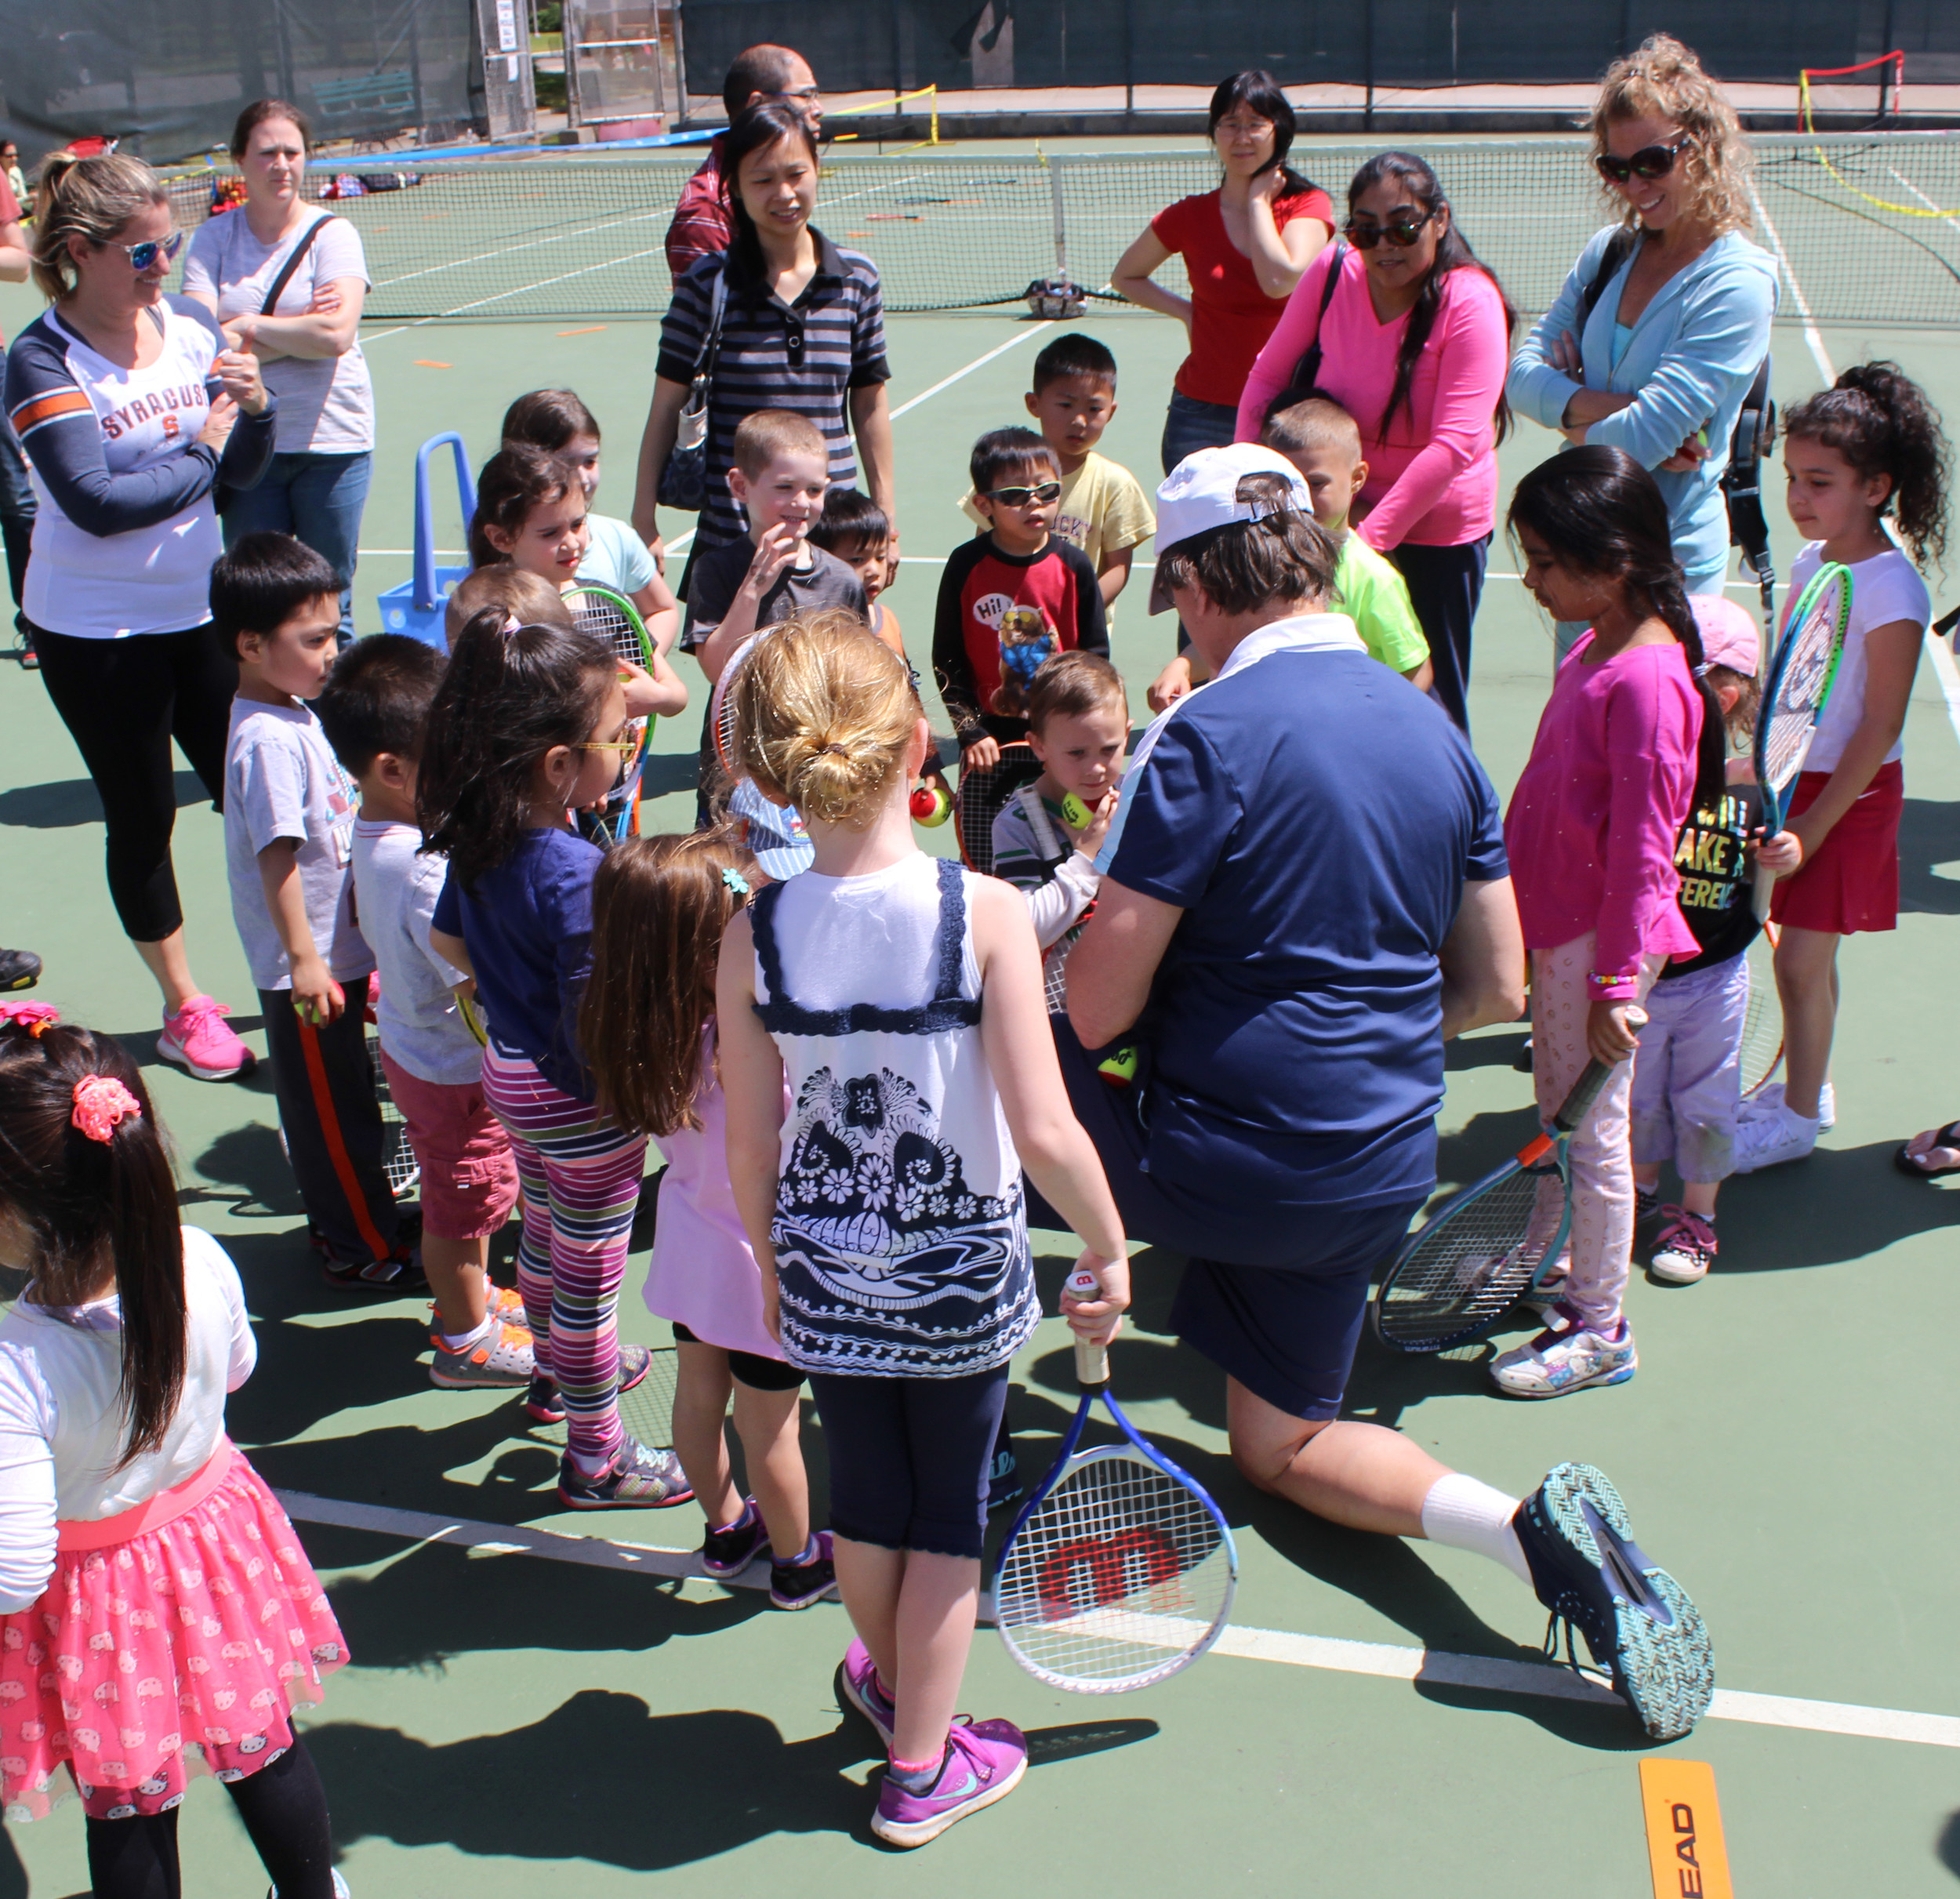 Tennis instructor Steve Abbondondelo addressed a crowd of children, ages 4-5, to teach them about tennis.